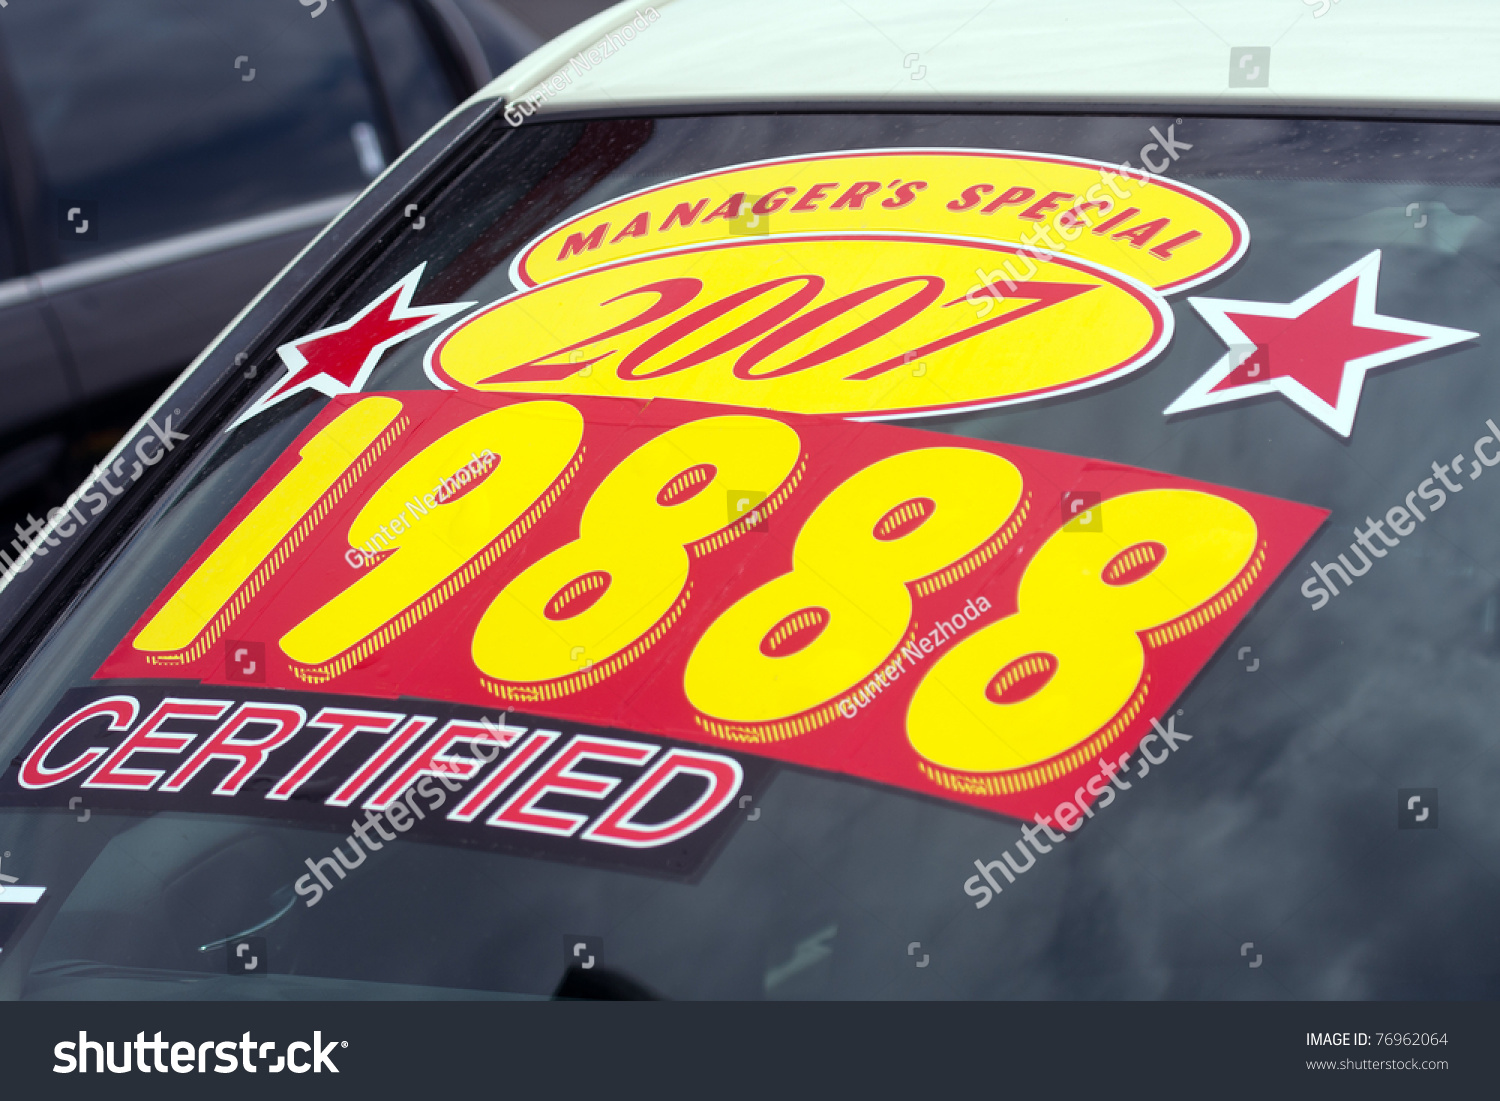 Car sticker design for sale - Windshield Price Sticker On A Used Car Lot For Sale